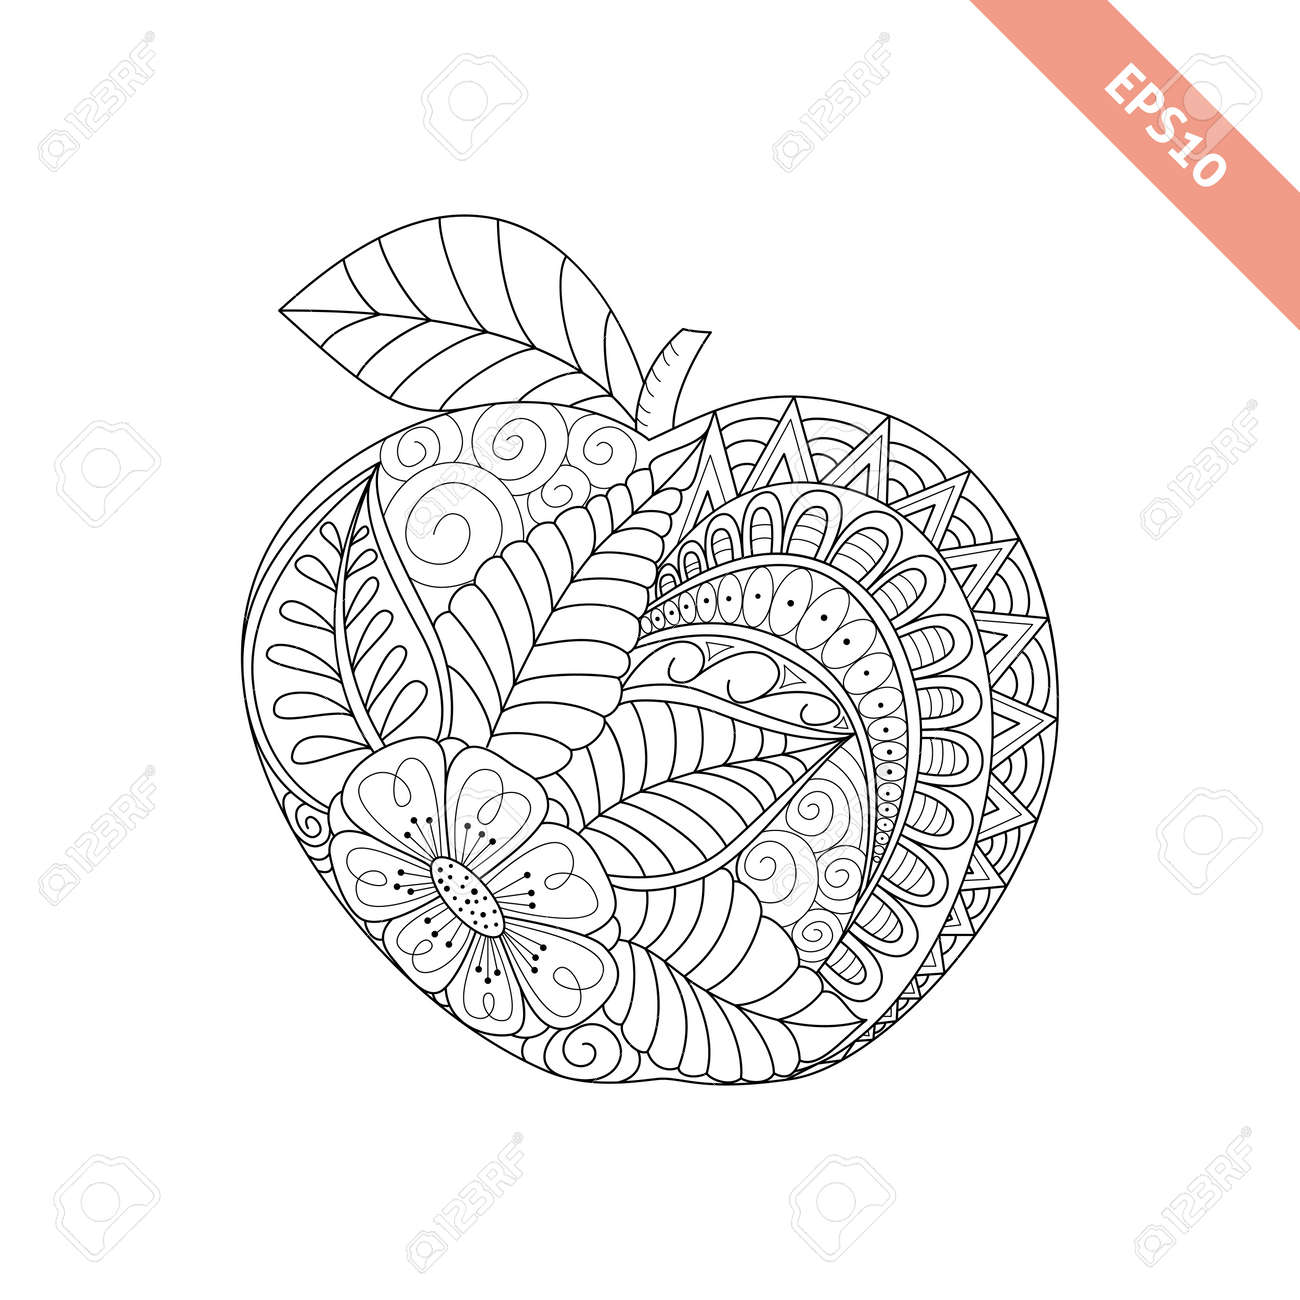 Vector Illustration Cartoon Ornate Apple. Coloring Book Page Royalty ...